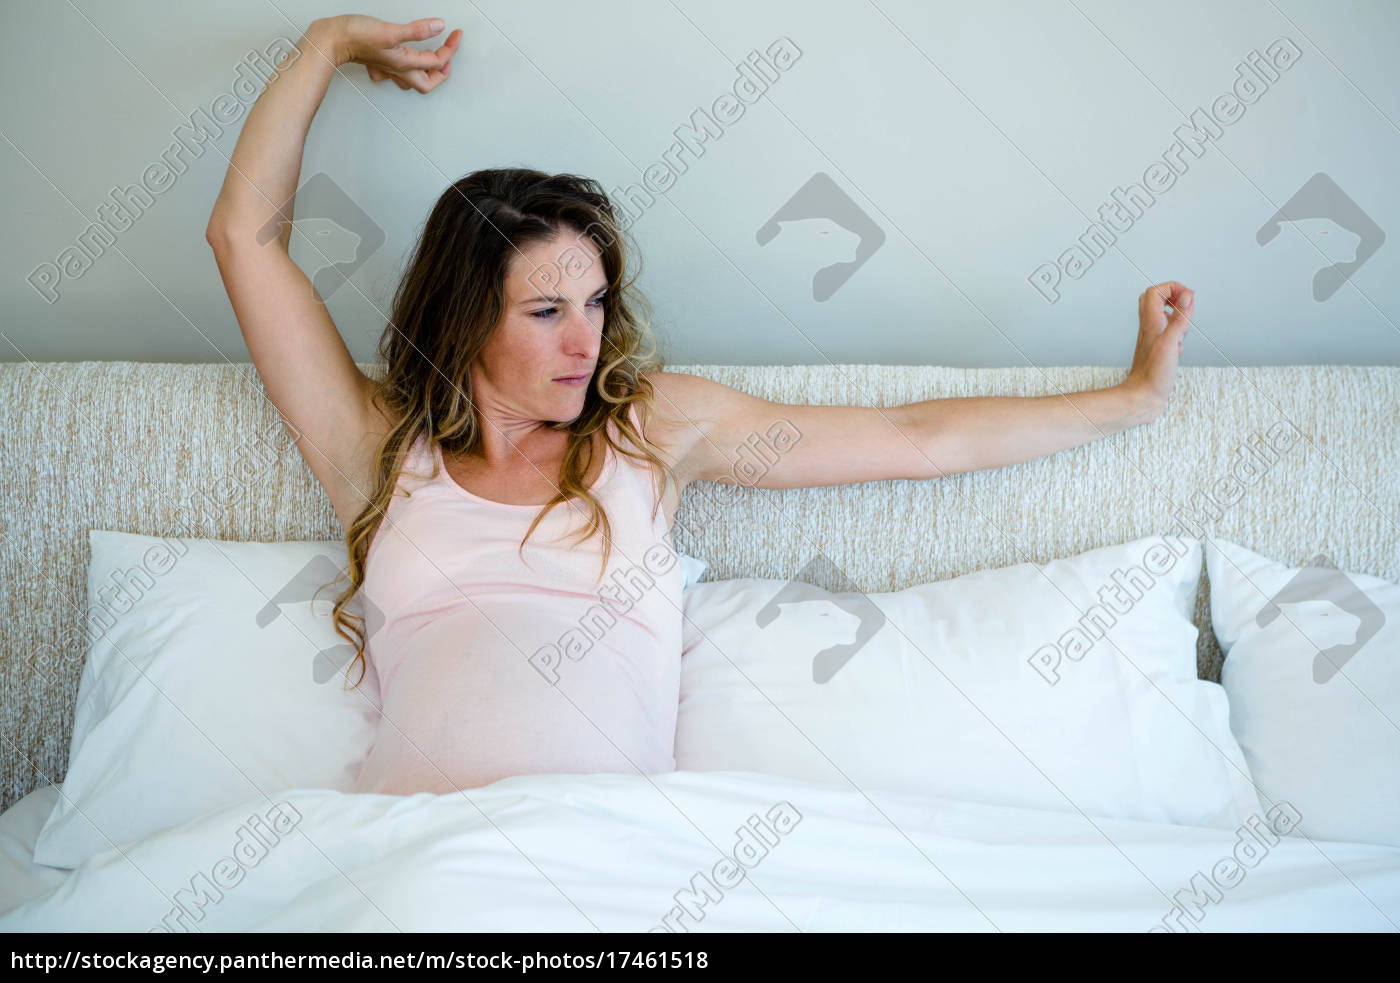 Tired Pregnant Woman In Bed Stretching Her Arms Royalty Free Image 17461518 Panthermedia Stock Agency